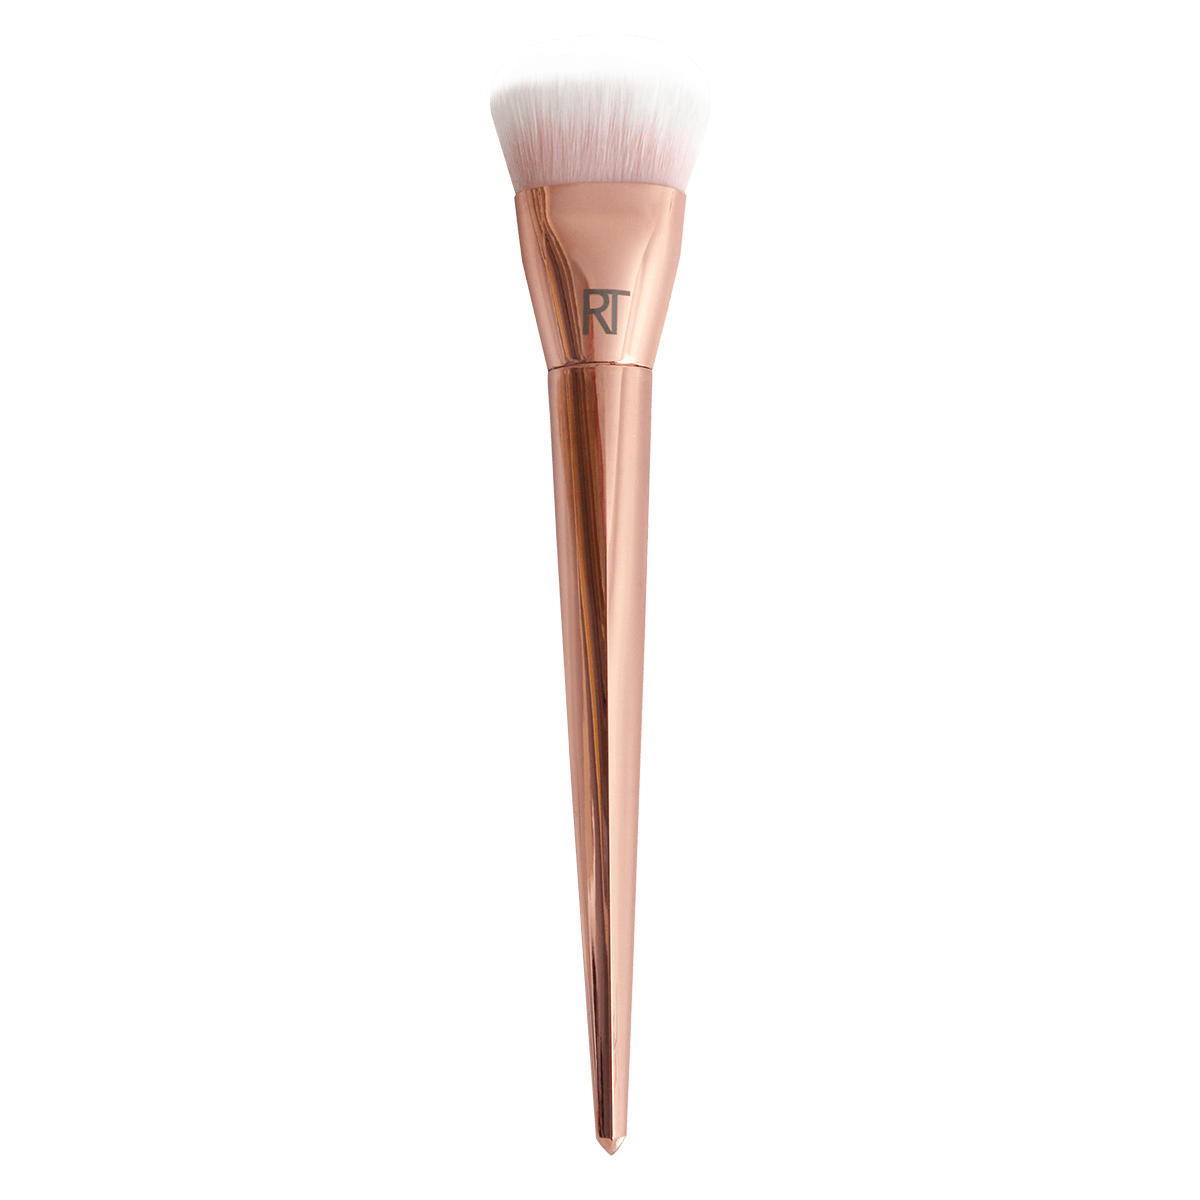 301 Flat Contour It cosmetics brushes, Contour brush